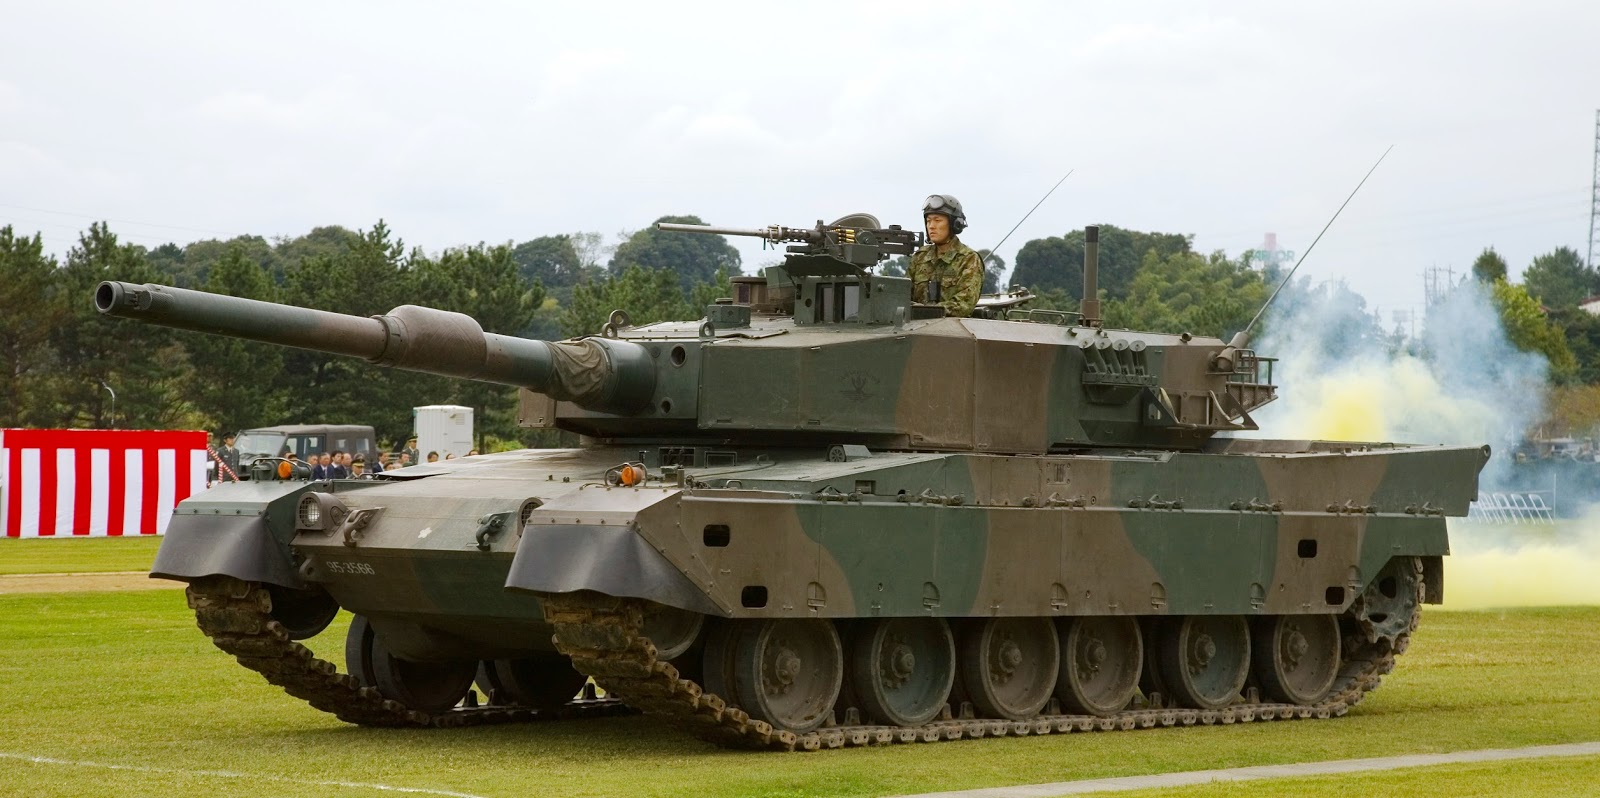 The philippines options for new tanks wheeled ifvs for rafpmp a jgsdf type 90 main battle tank japan is planning to reduce its tank inventory including the type 90 and these could be available for transfer to sciox Image collections